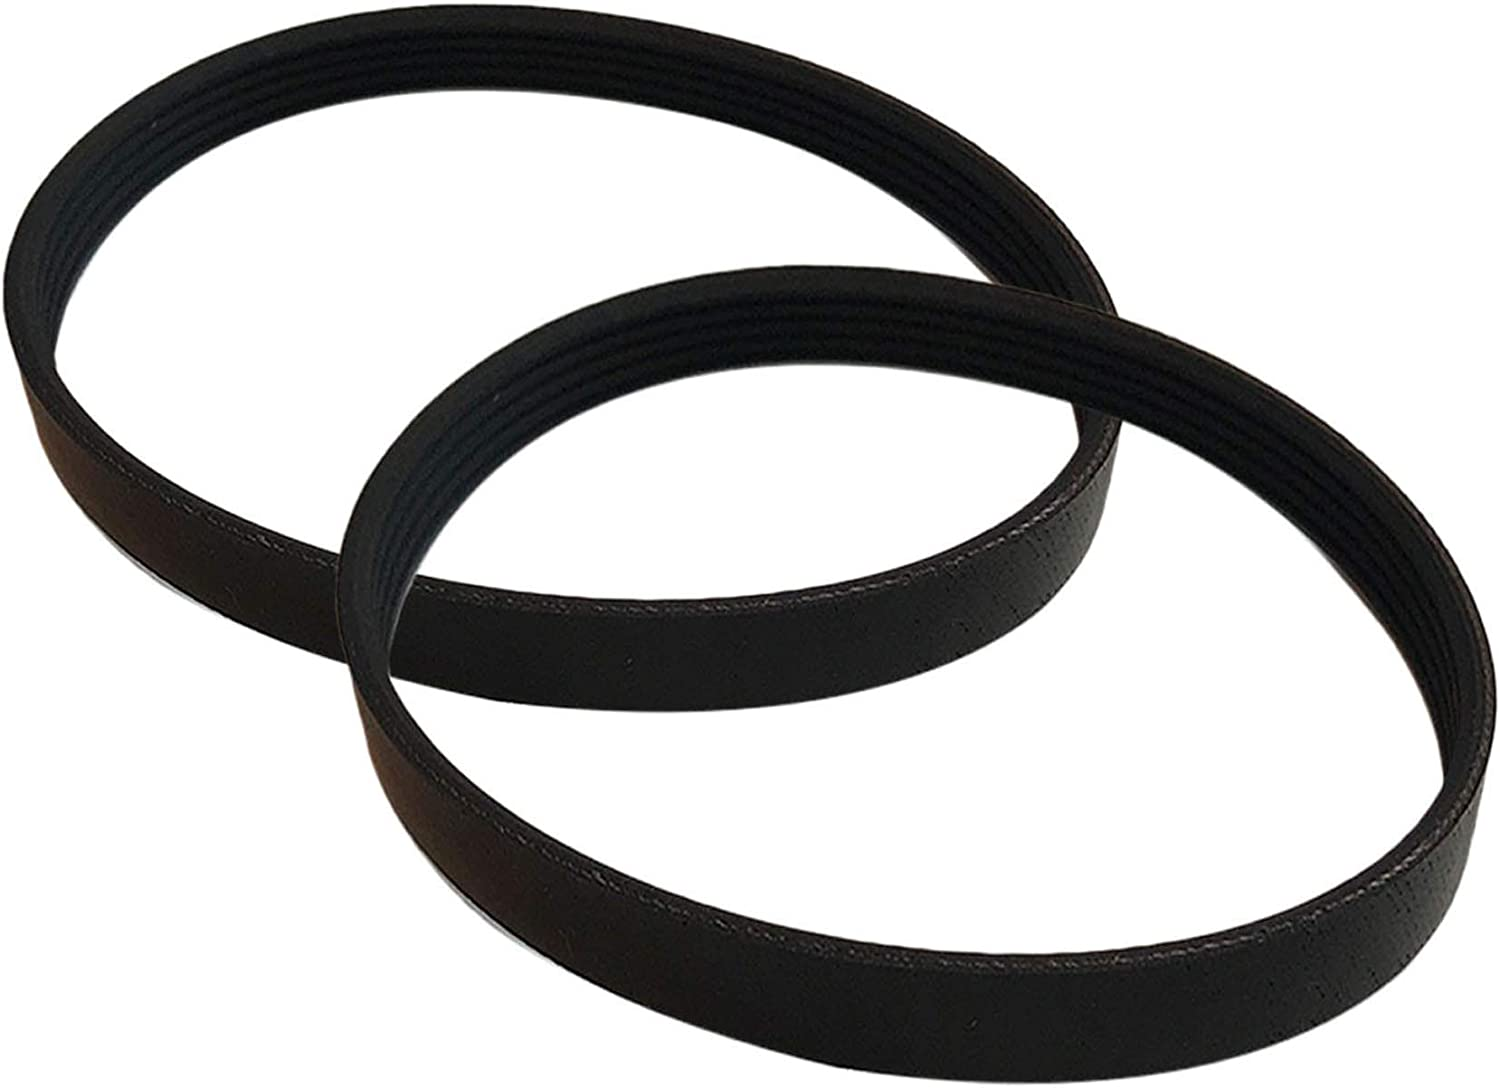 EATON YALE /& TOWNE 600L050 Replacement Belt